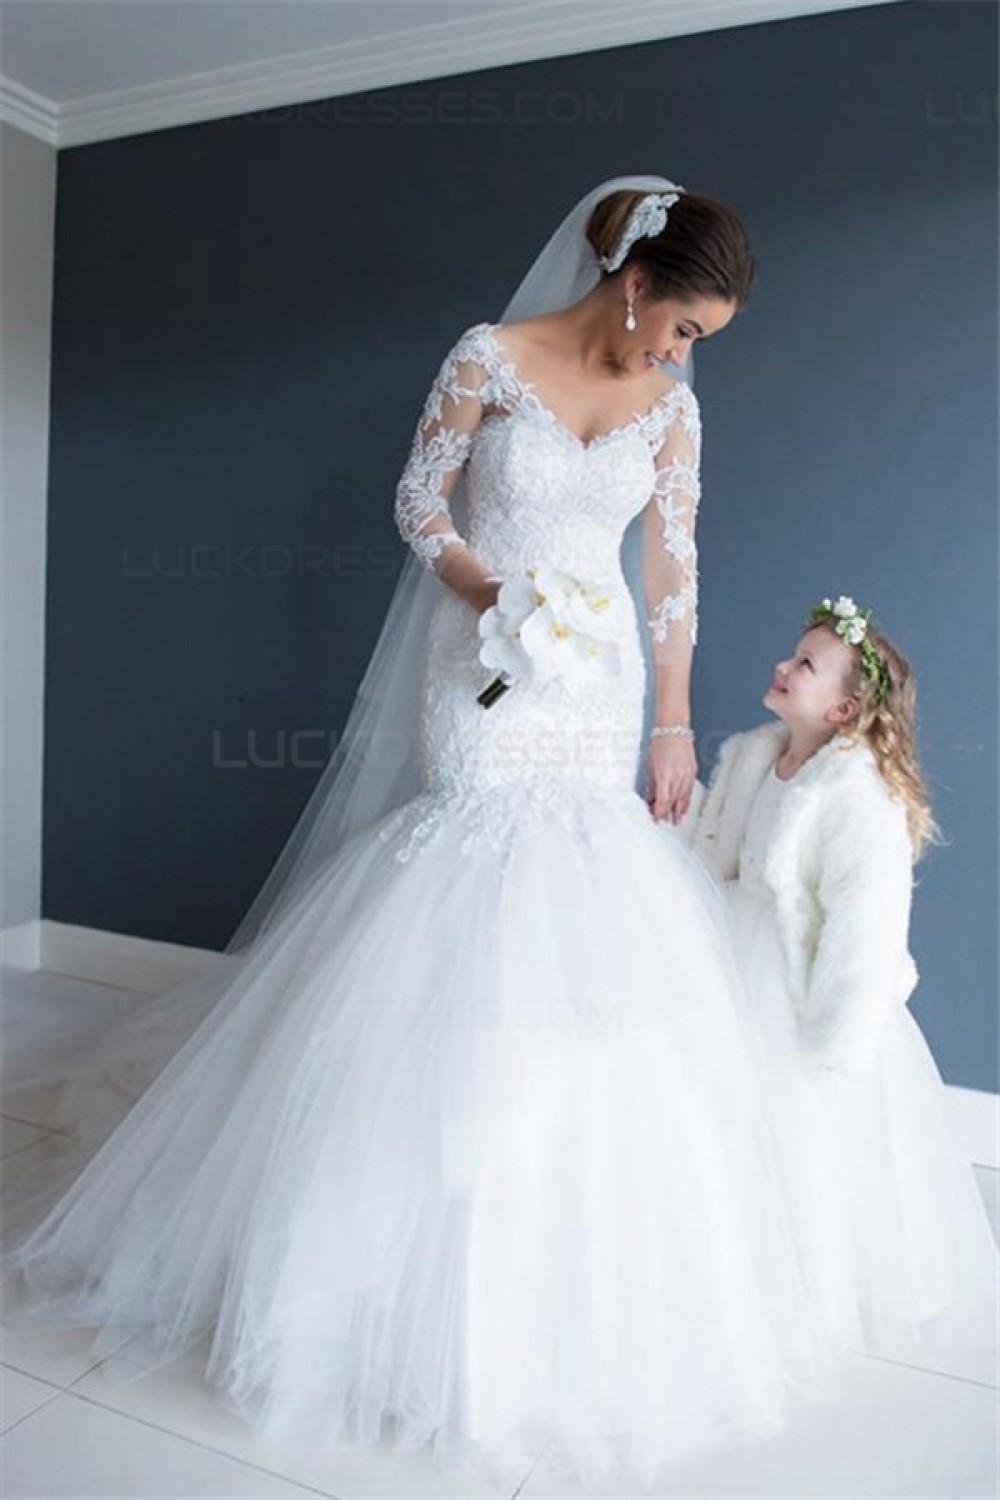 Trumpet/Mermaid V-neck 3/4 Length Sleeve Tulle Wedding Dress